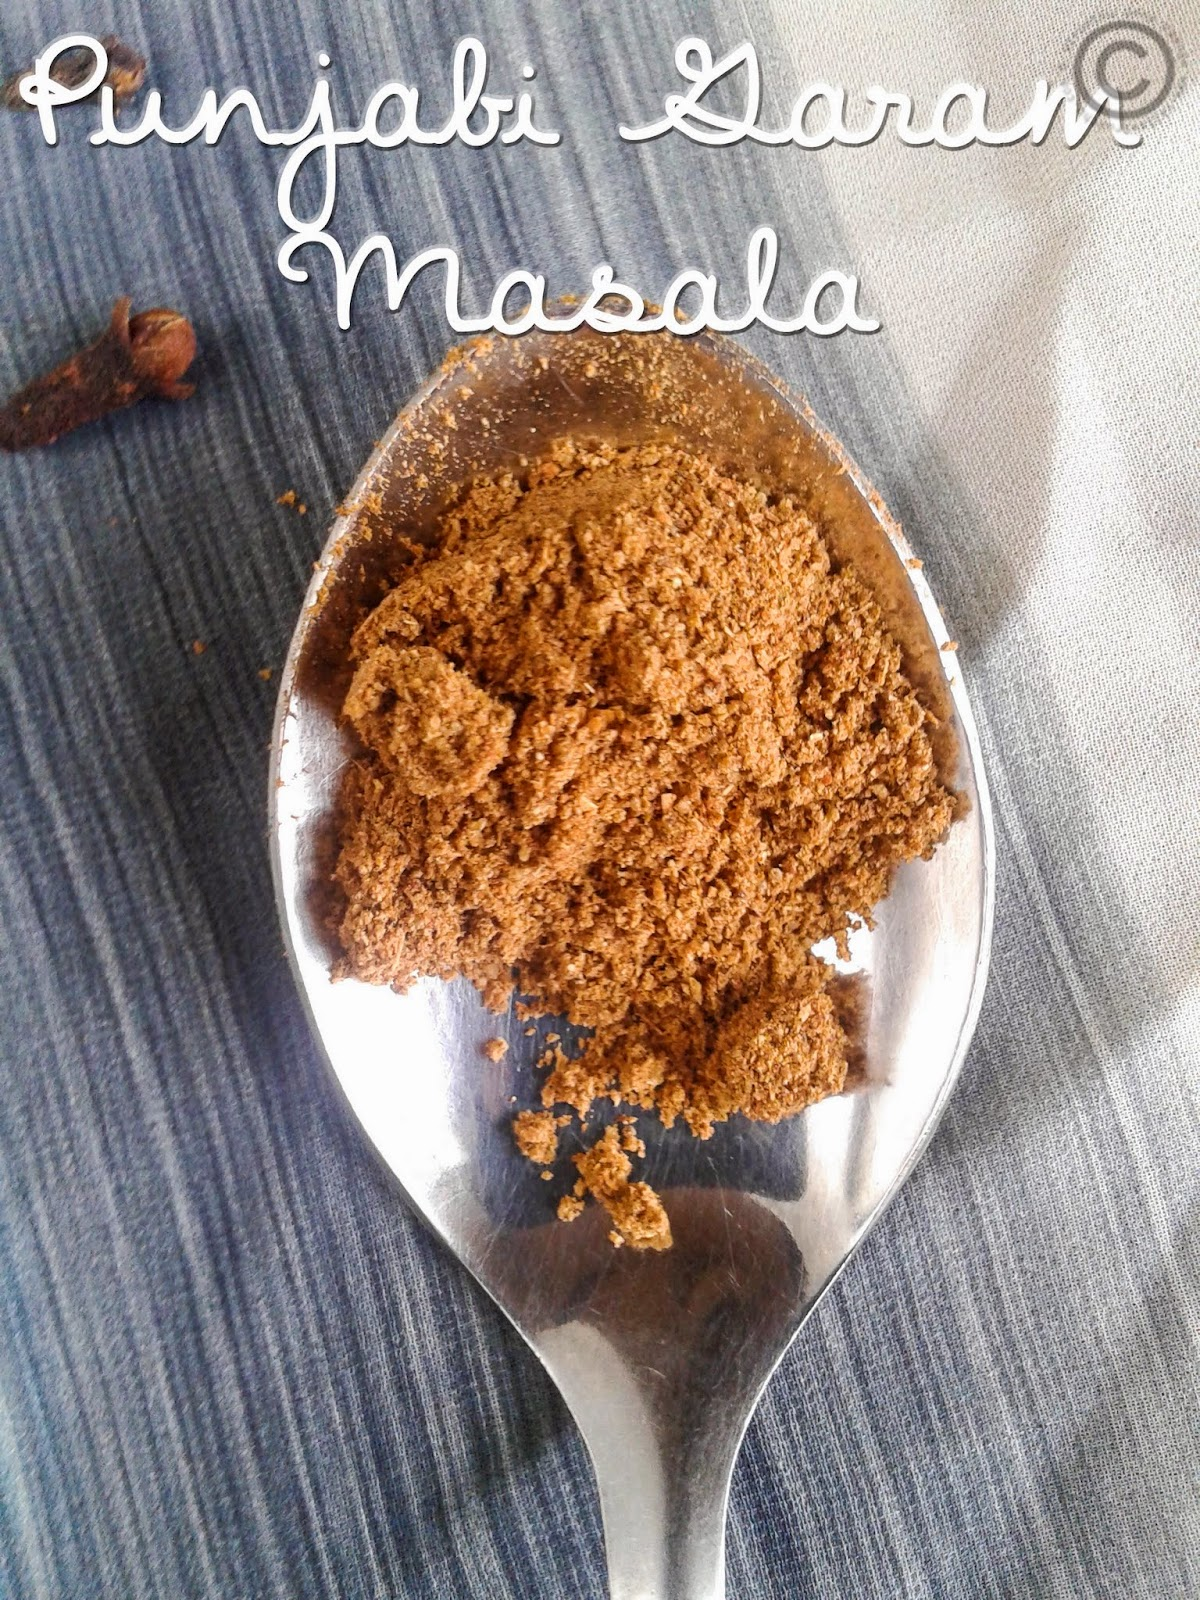 garam-masala-powder